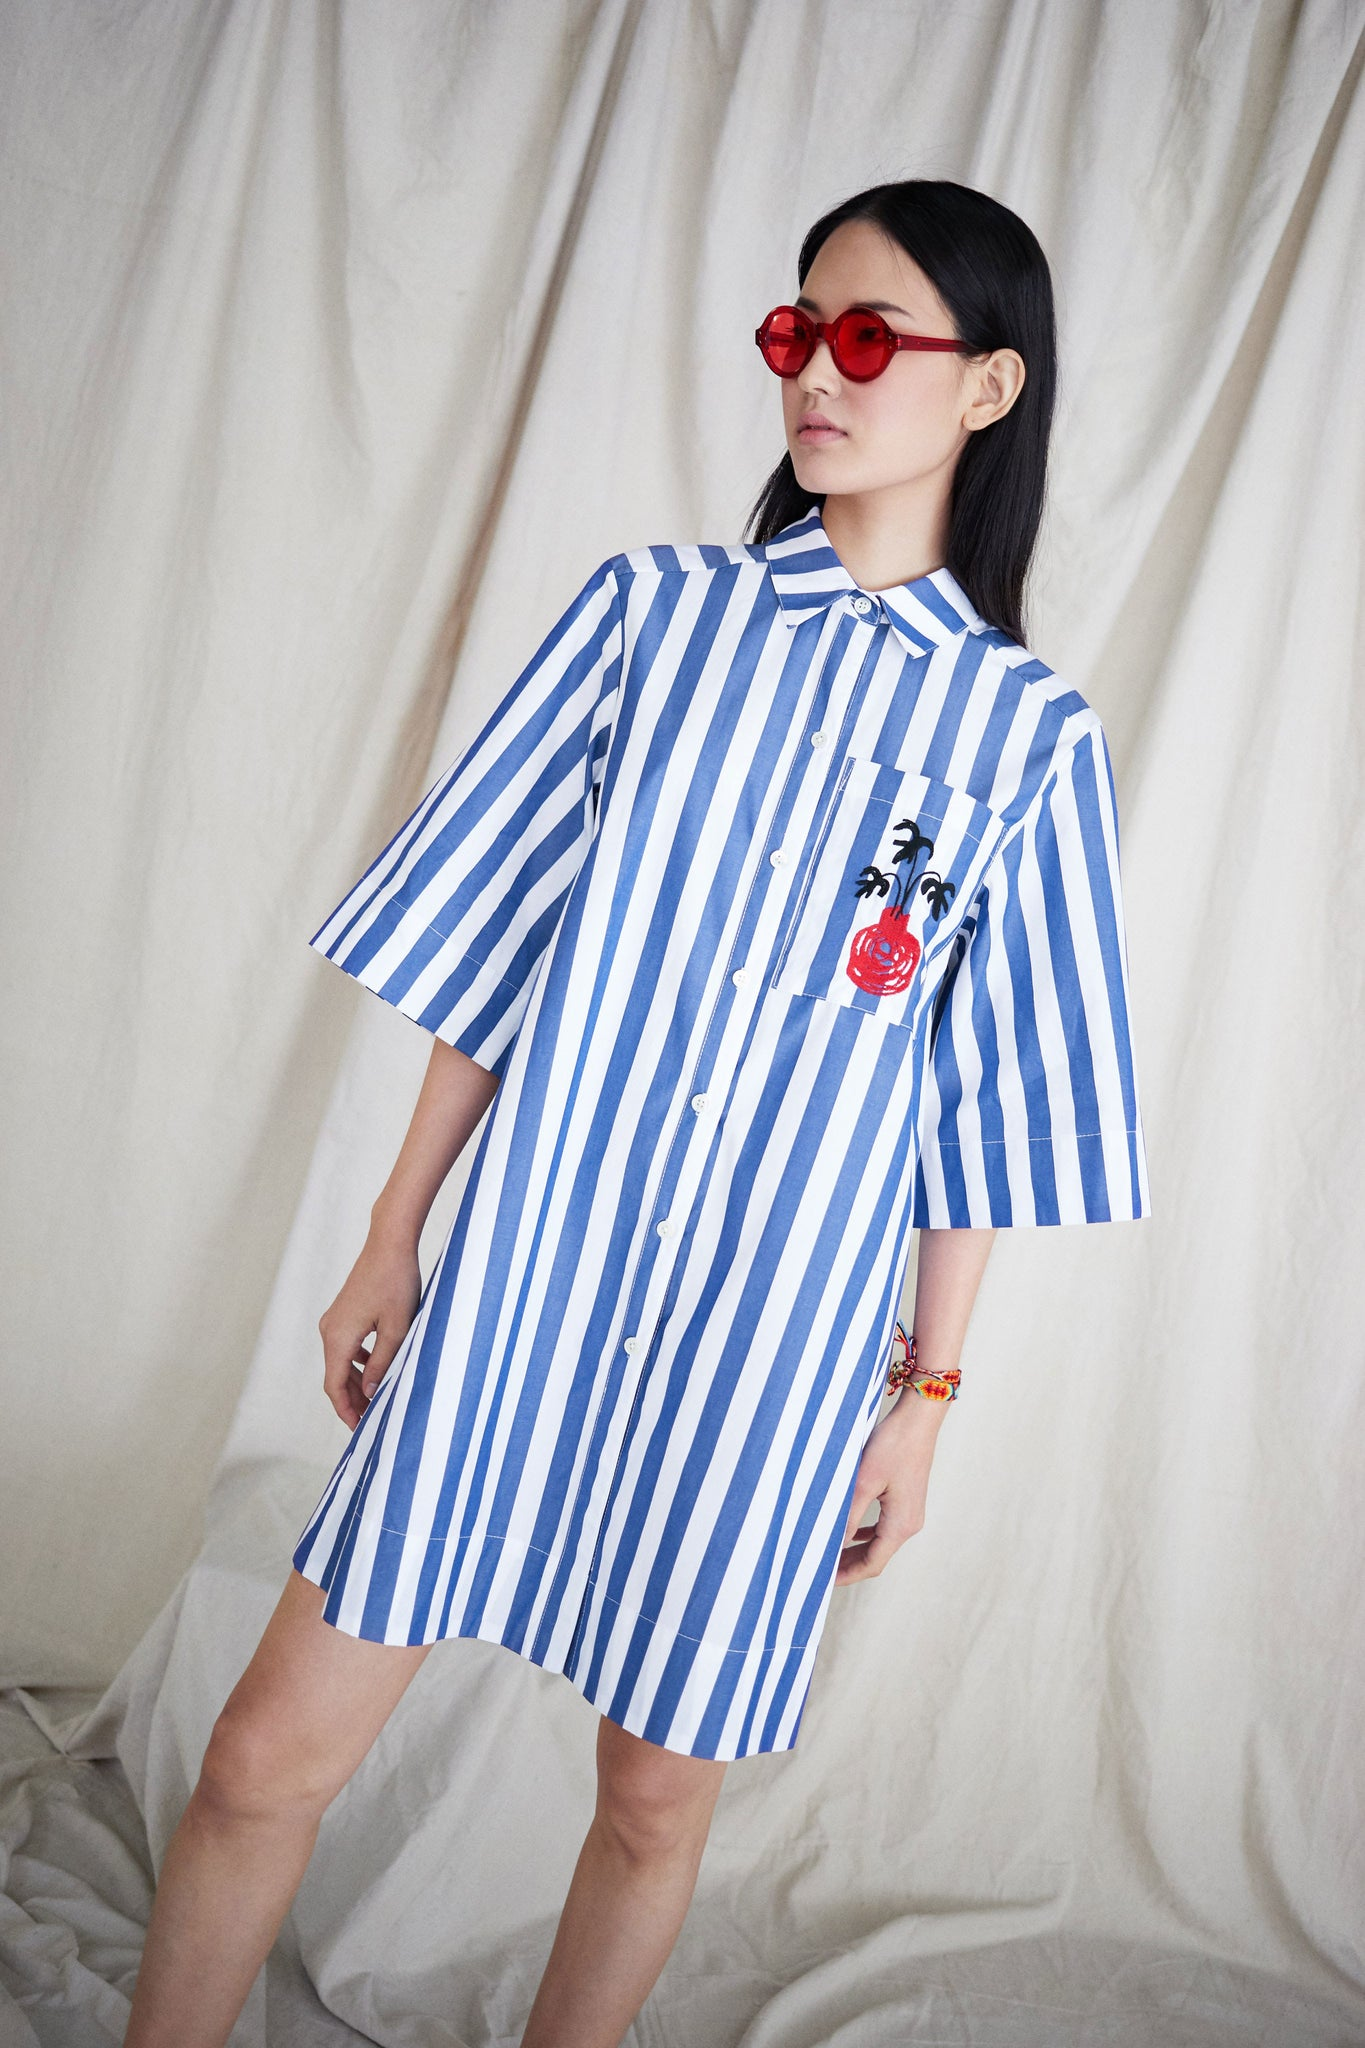 Beau Dress in Blue and White Vertical Stripes